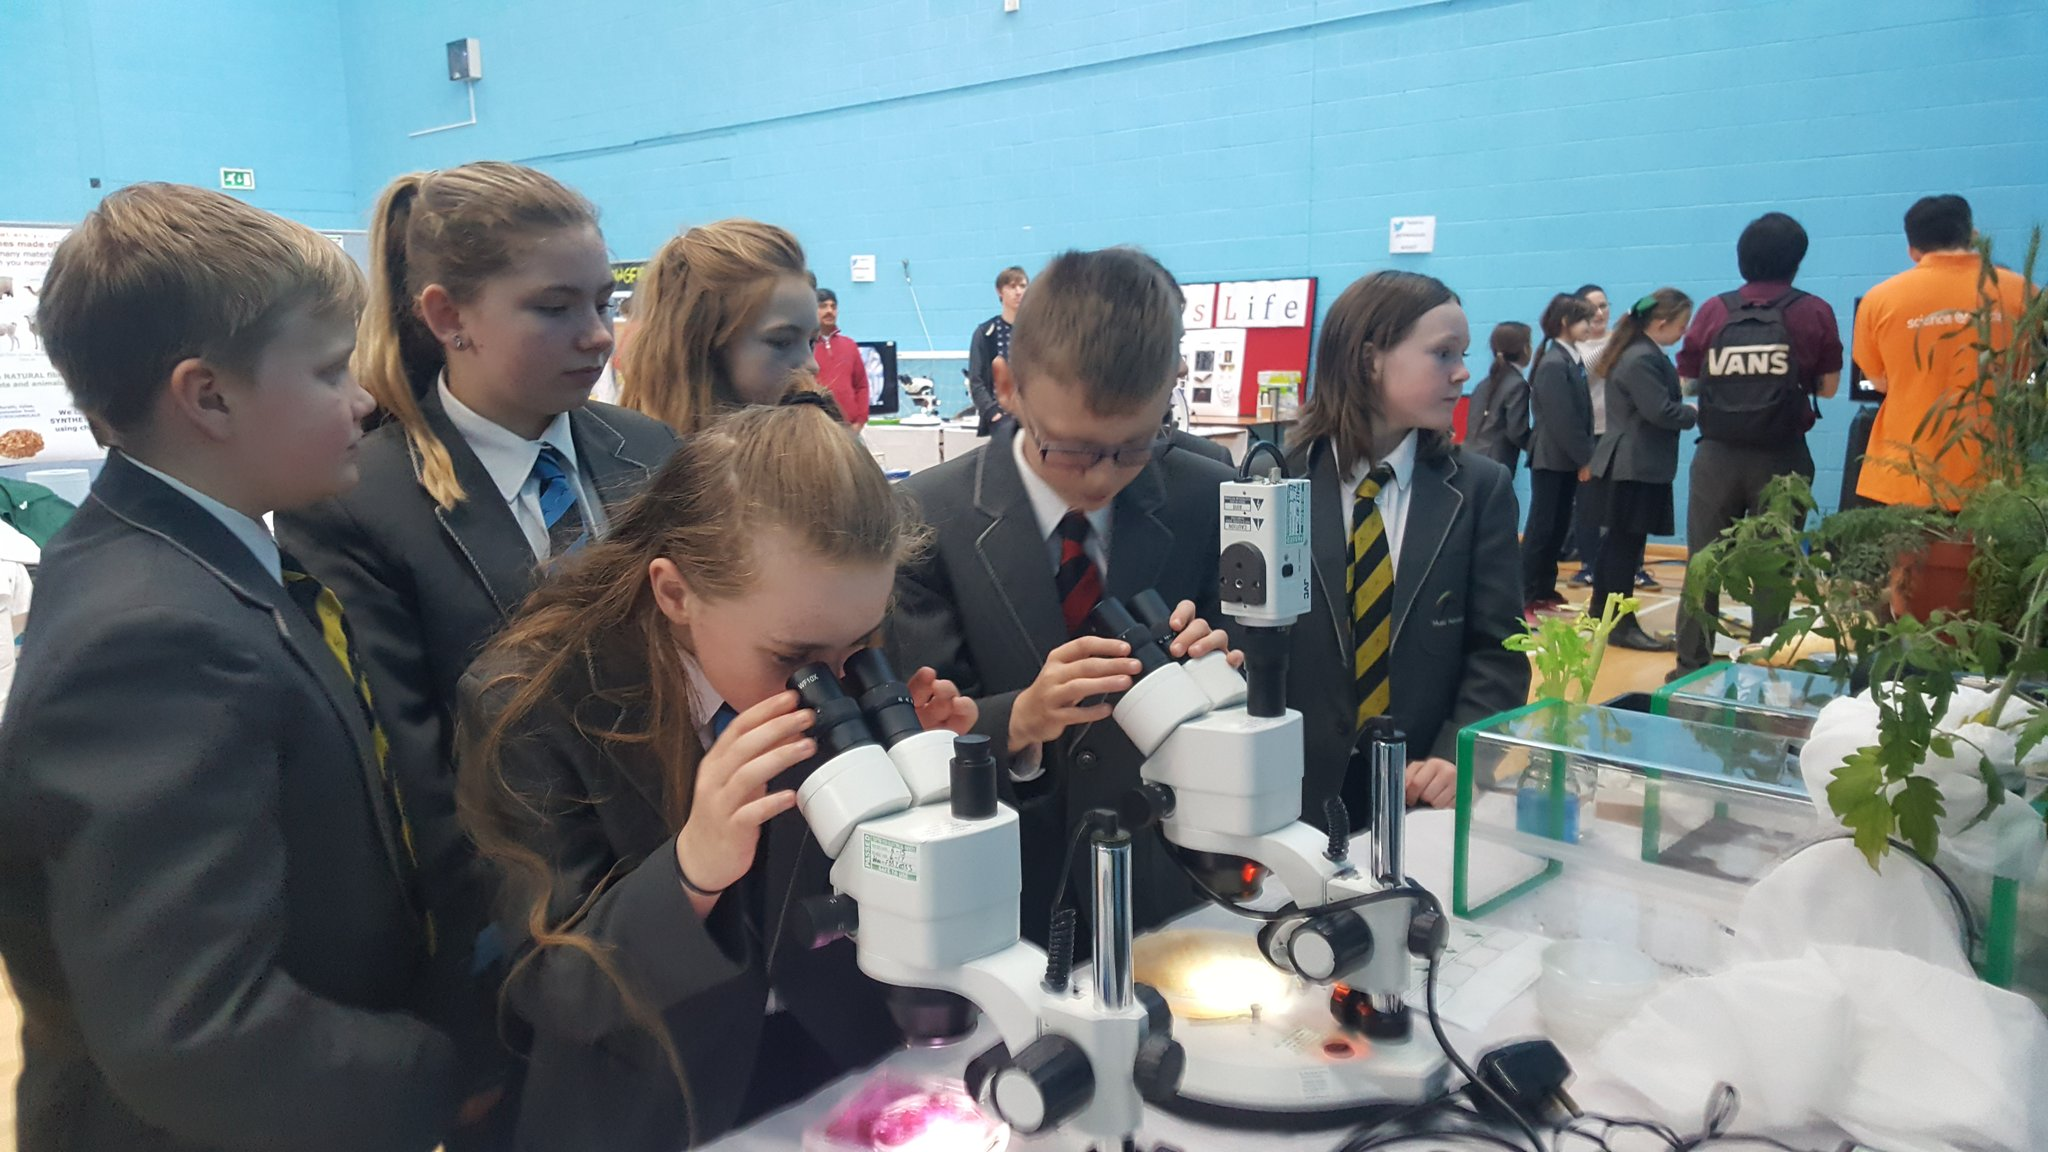 At Leeds Festival of Science exploring the wonders of plants and the human body #musicfederation #LFoS17 @STEMatLeeds https://t.co/7zxpWkZWmb